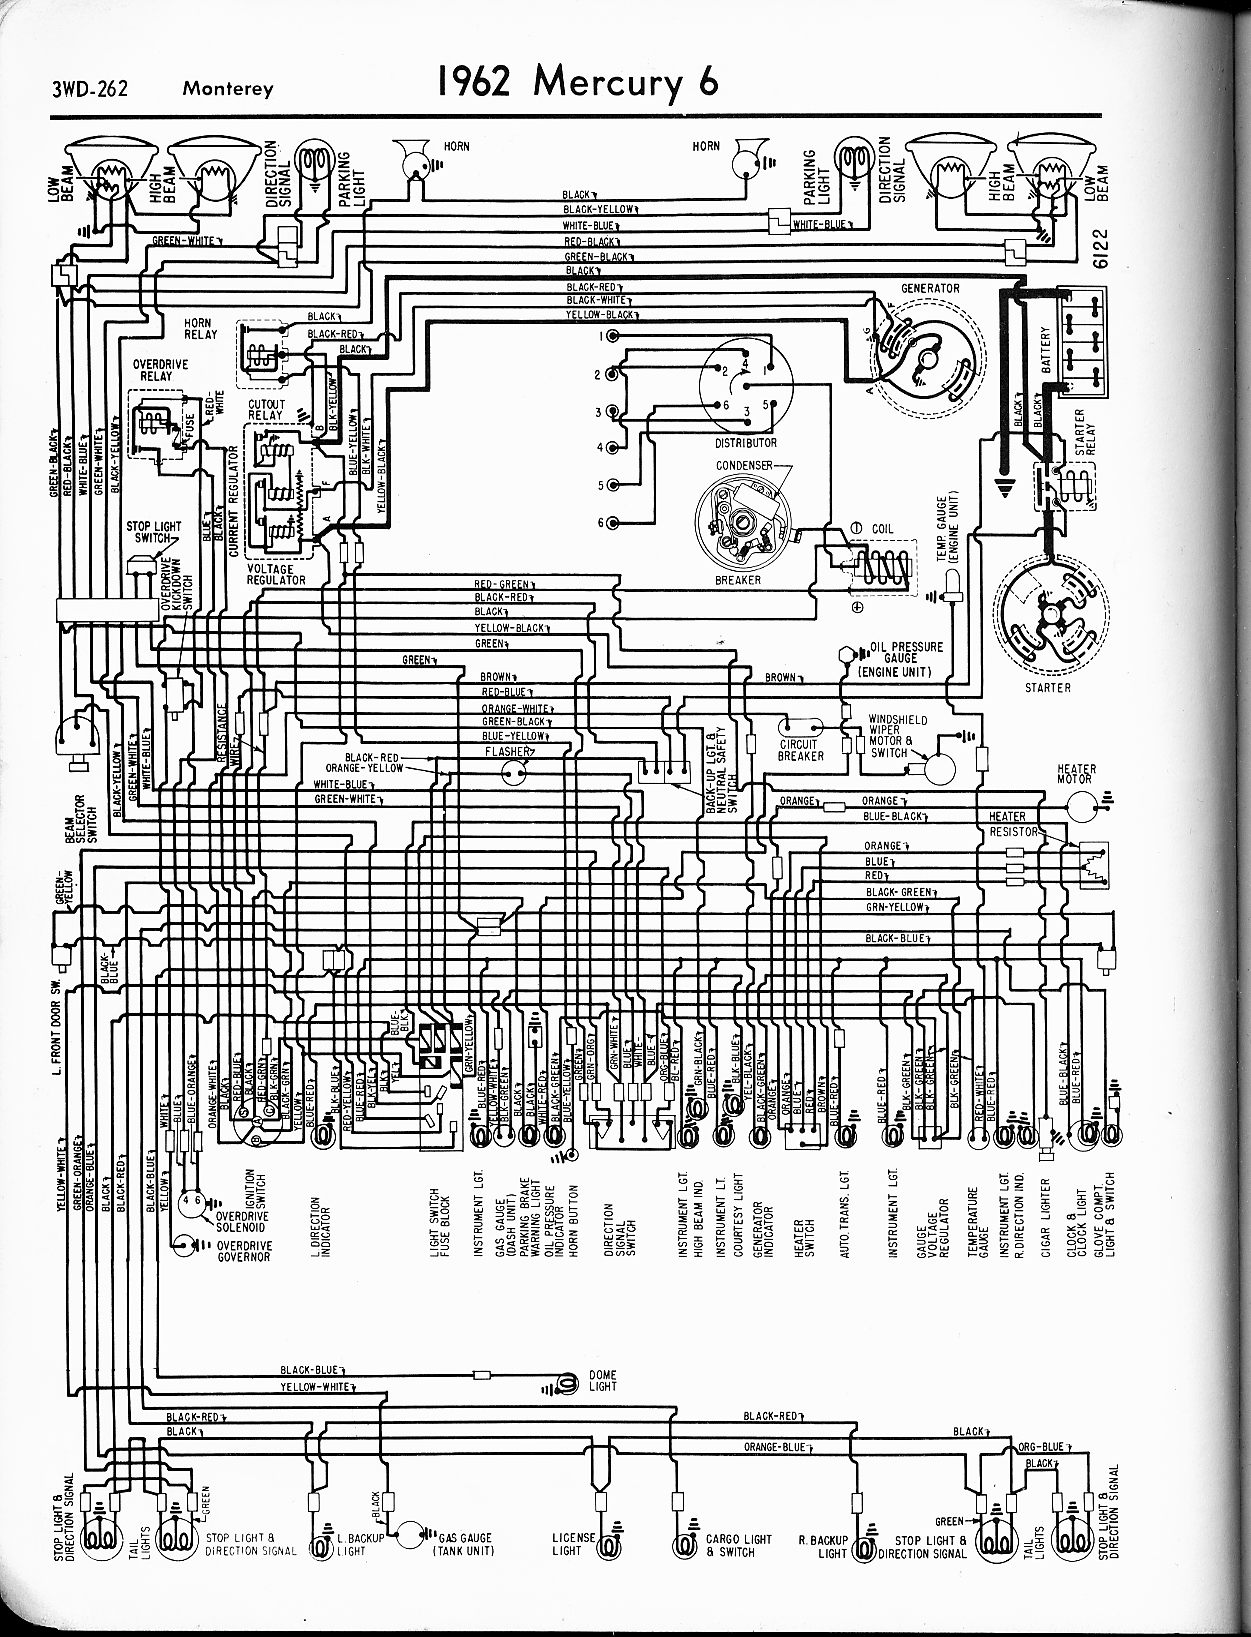 1965 Lincoln Welder Wiring Diagram Starter Basic Guide Sa 200 Mercury Diagrams The Old Car Manual Project Rh Oldcarmanualproject Com Troubleshooting Hobart